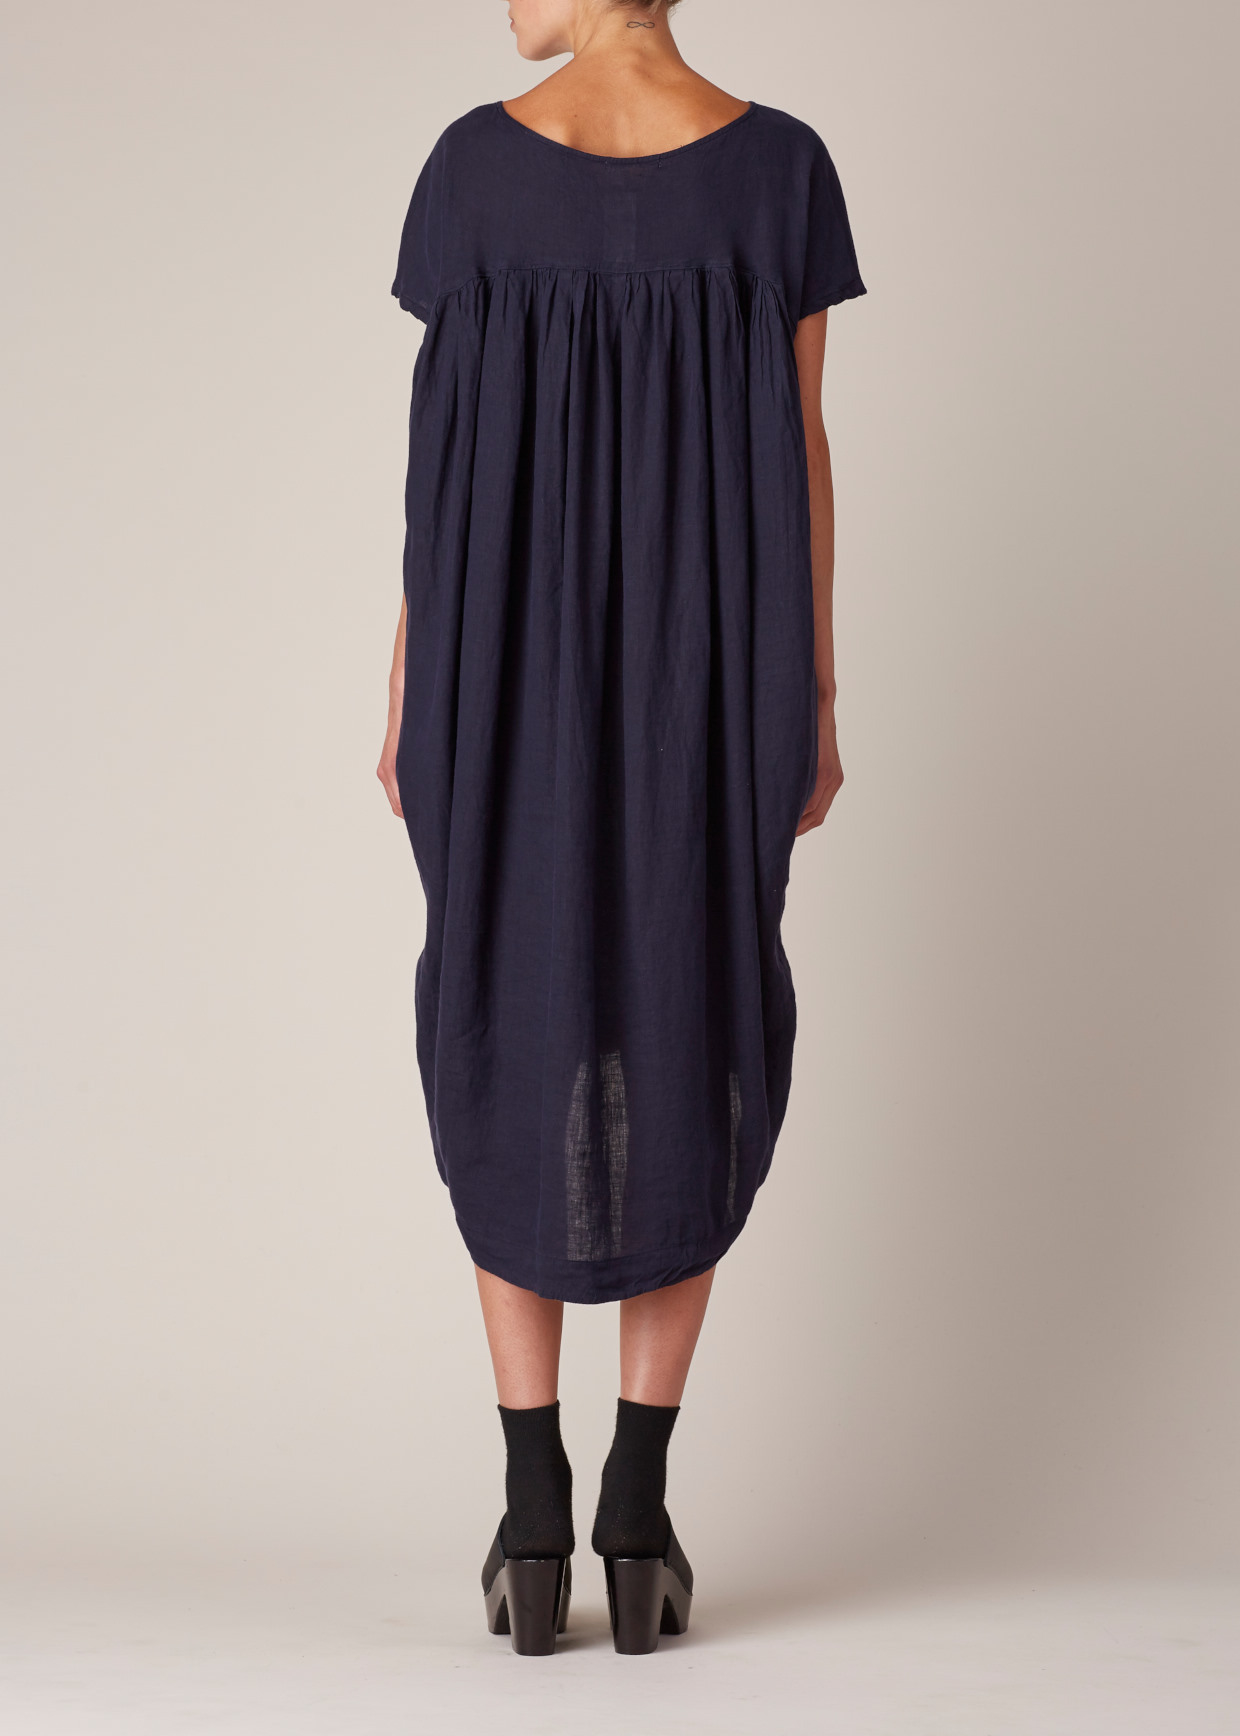 c929a3d2cd7 Black Crane Navy Cocoon Dress in Blue - Lyst